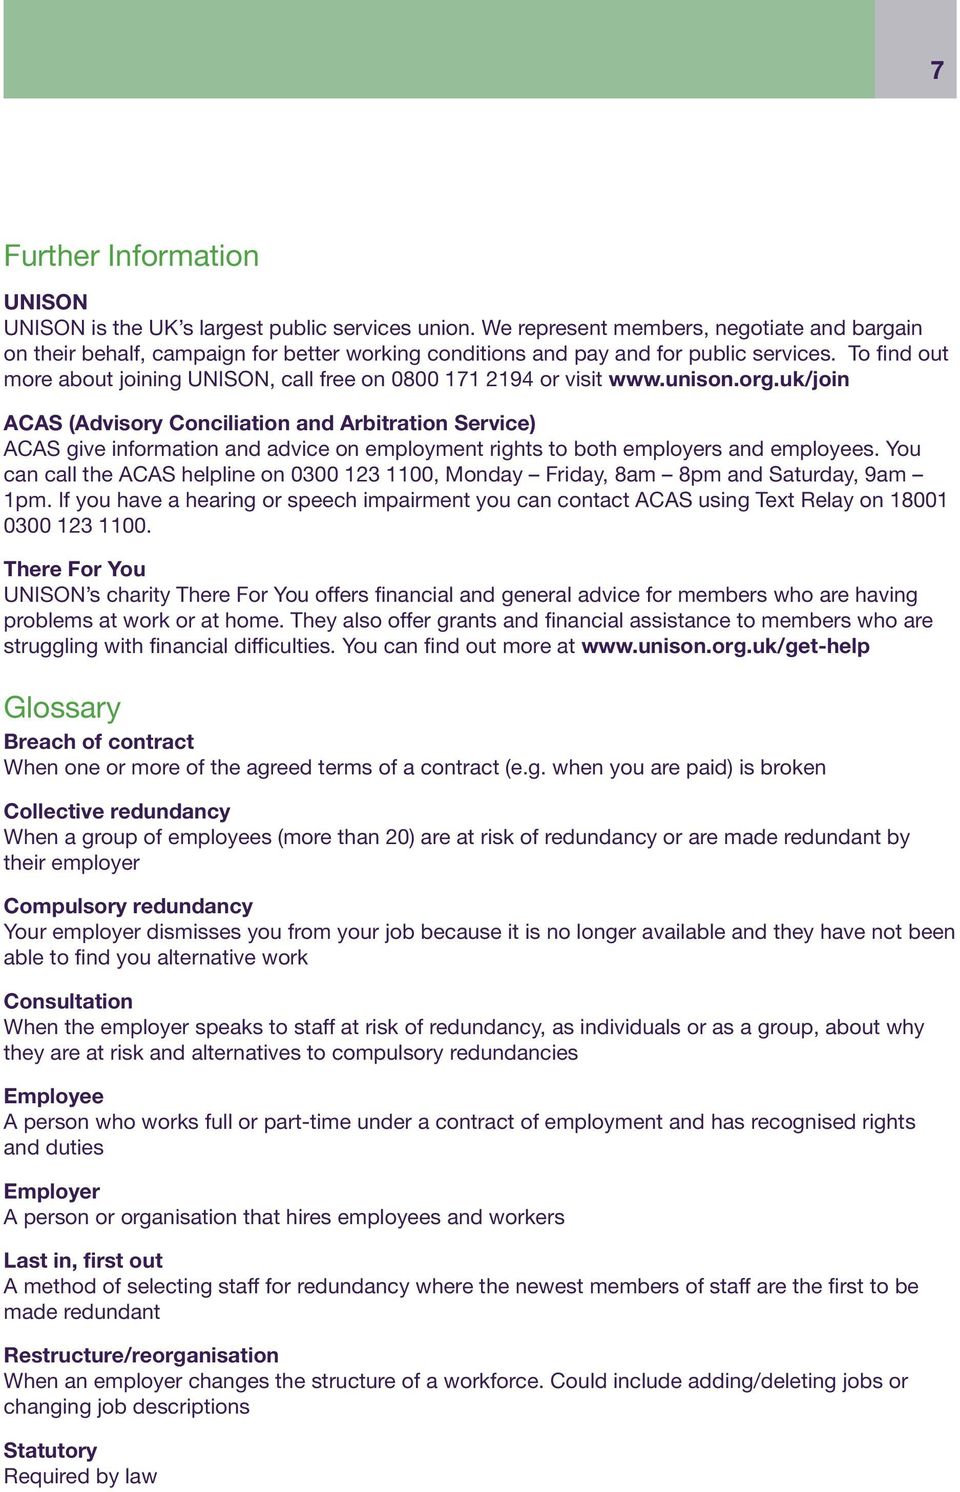 To find out more about joining UNISON, call free on 0800 171 2194 or visit www.unison.org.